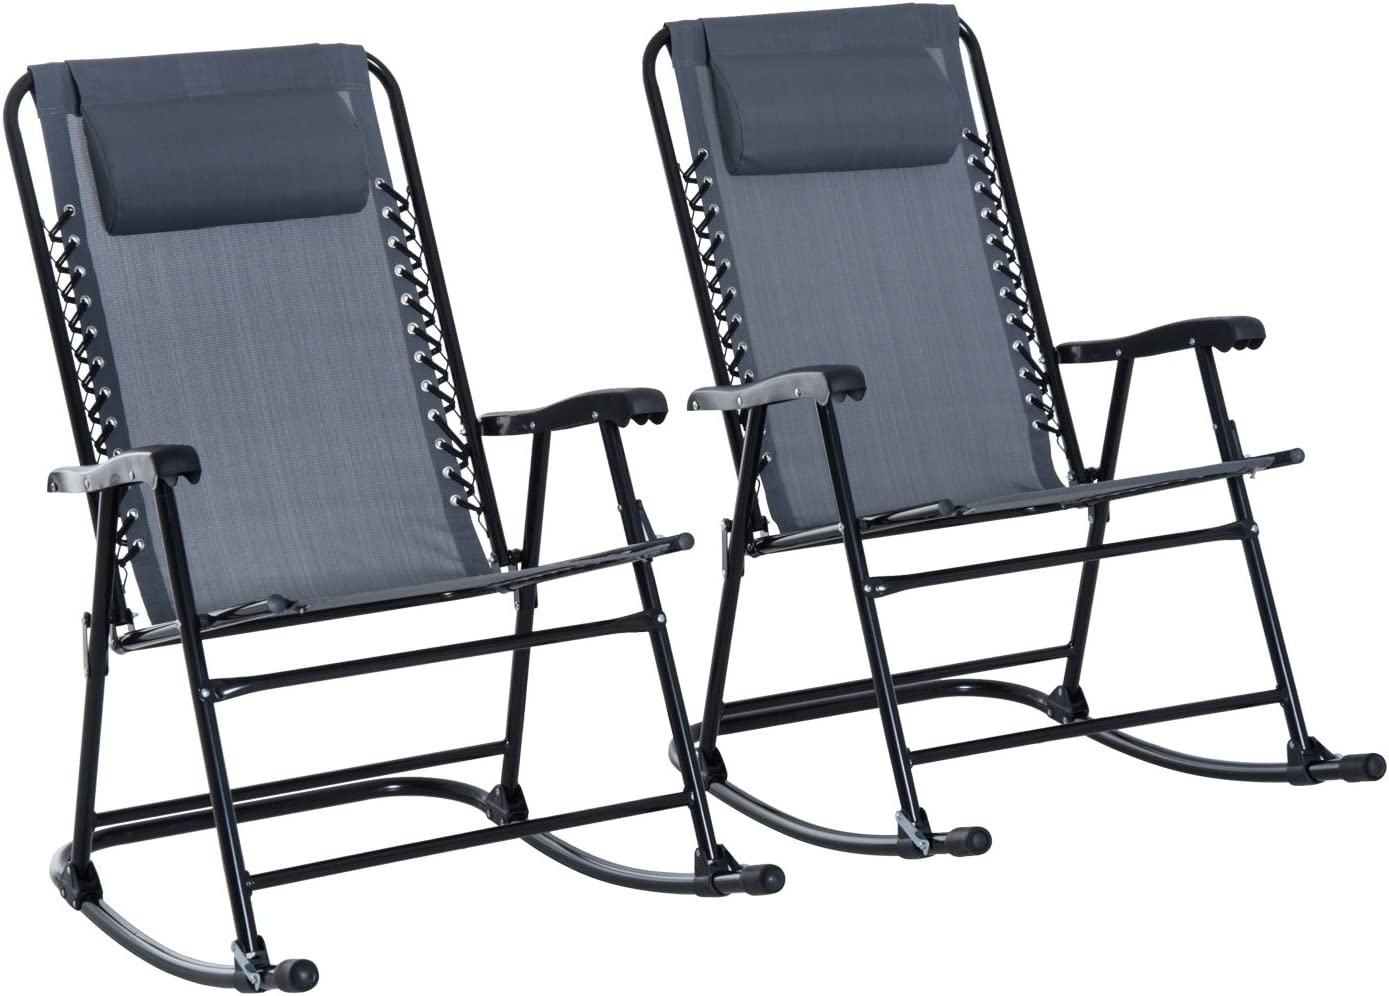 Outsunny Mesh Outdoor Patio Folding Rocking Chair Set – Grey